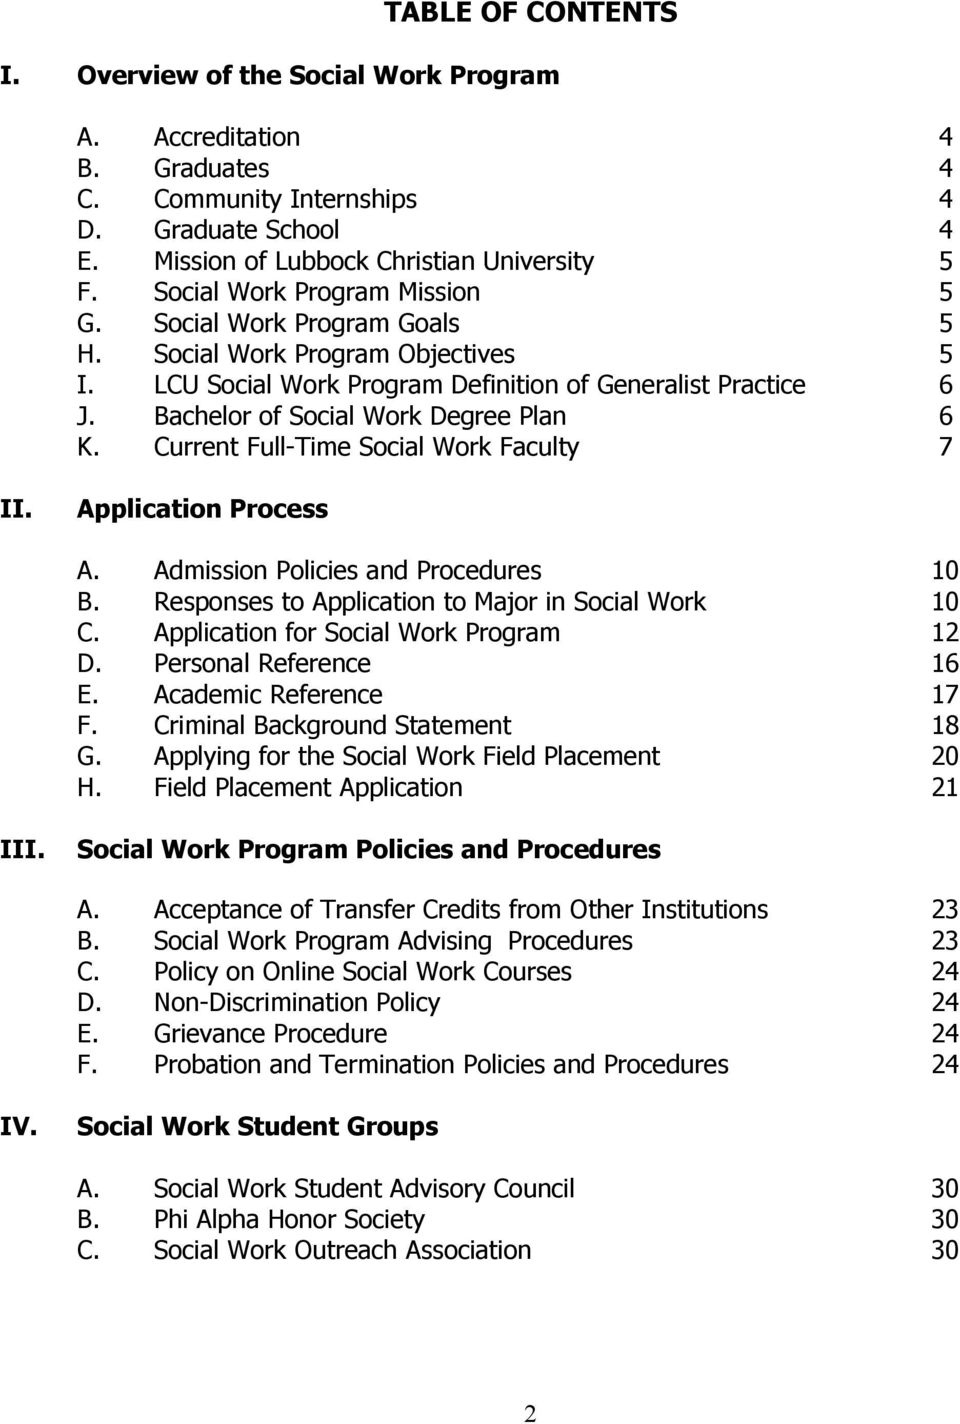 Bachelor of Social Work Degree Plan 6 K. Current Full-Time Social Work Faculty 7 II. Application Process A. Admission Policies and Procedures 10 B.